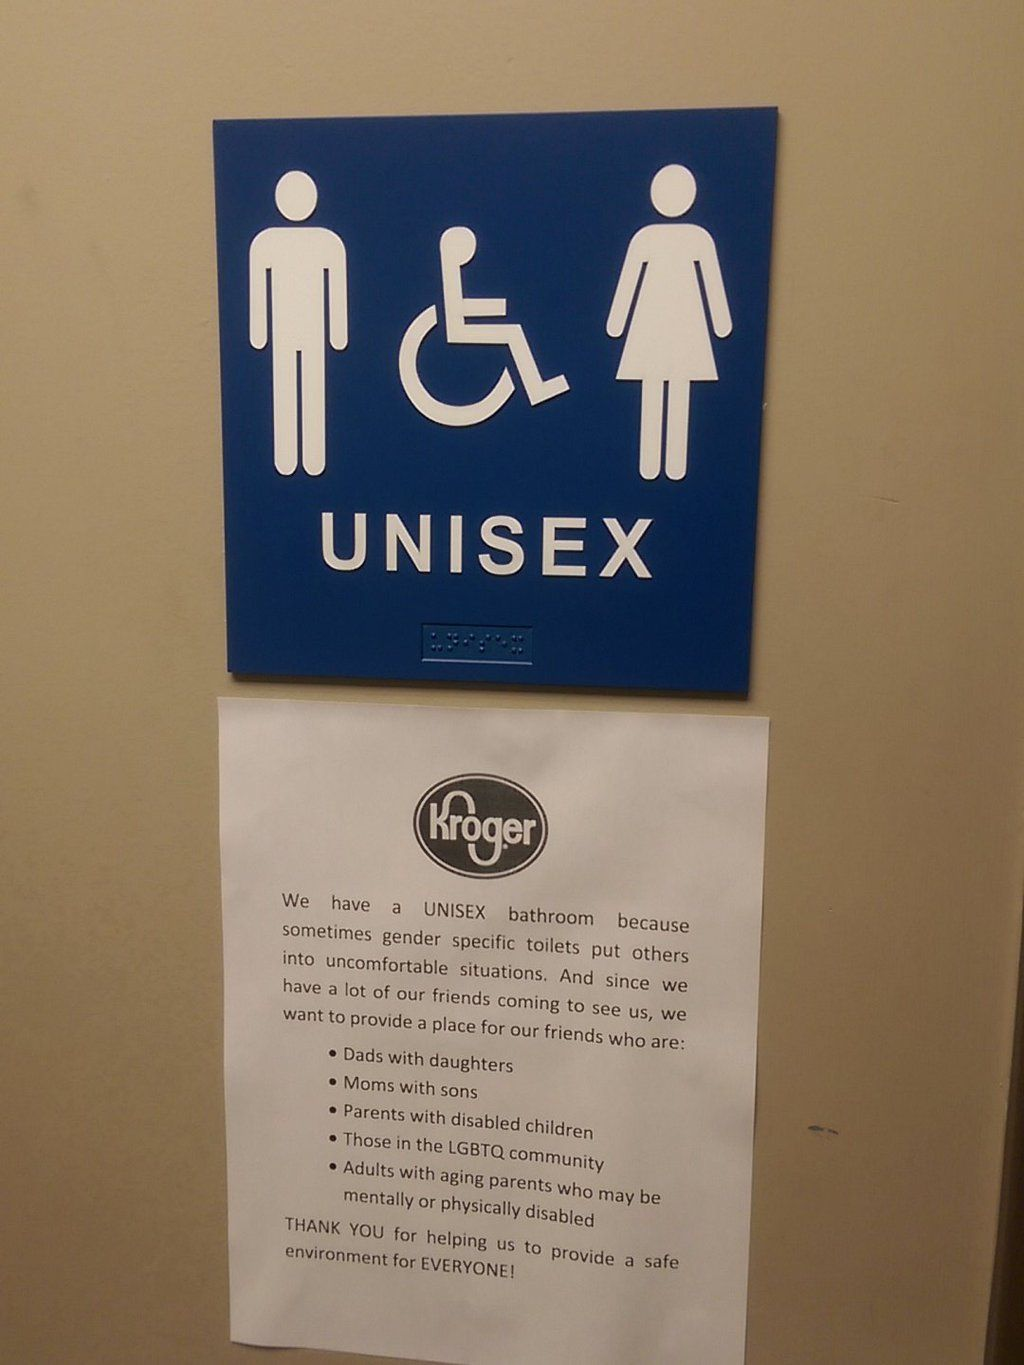 kroger unisex bathroom